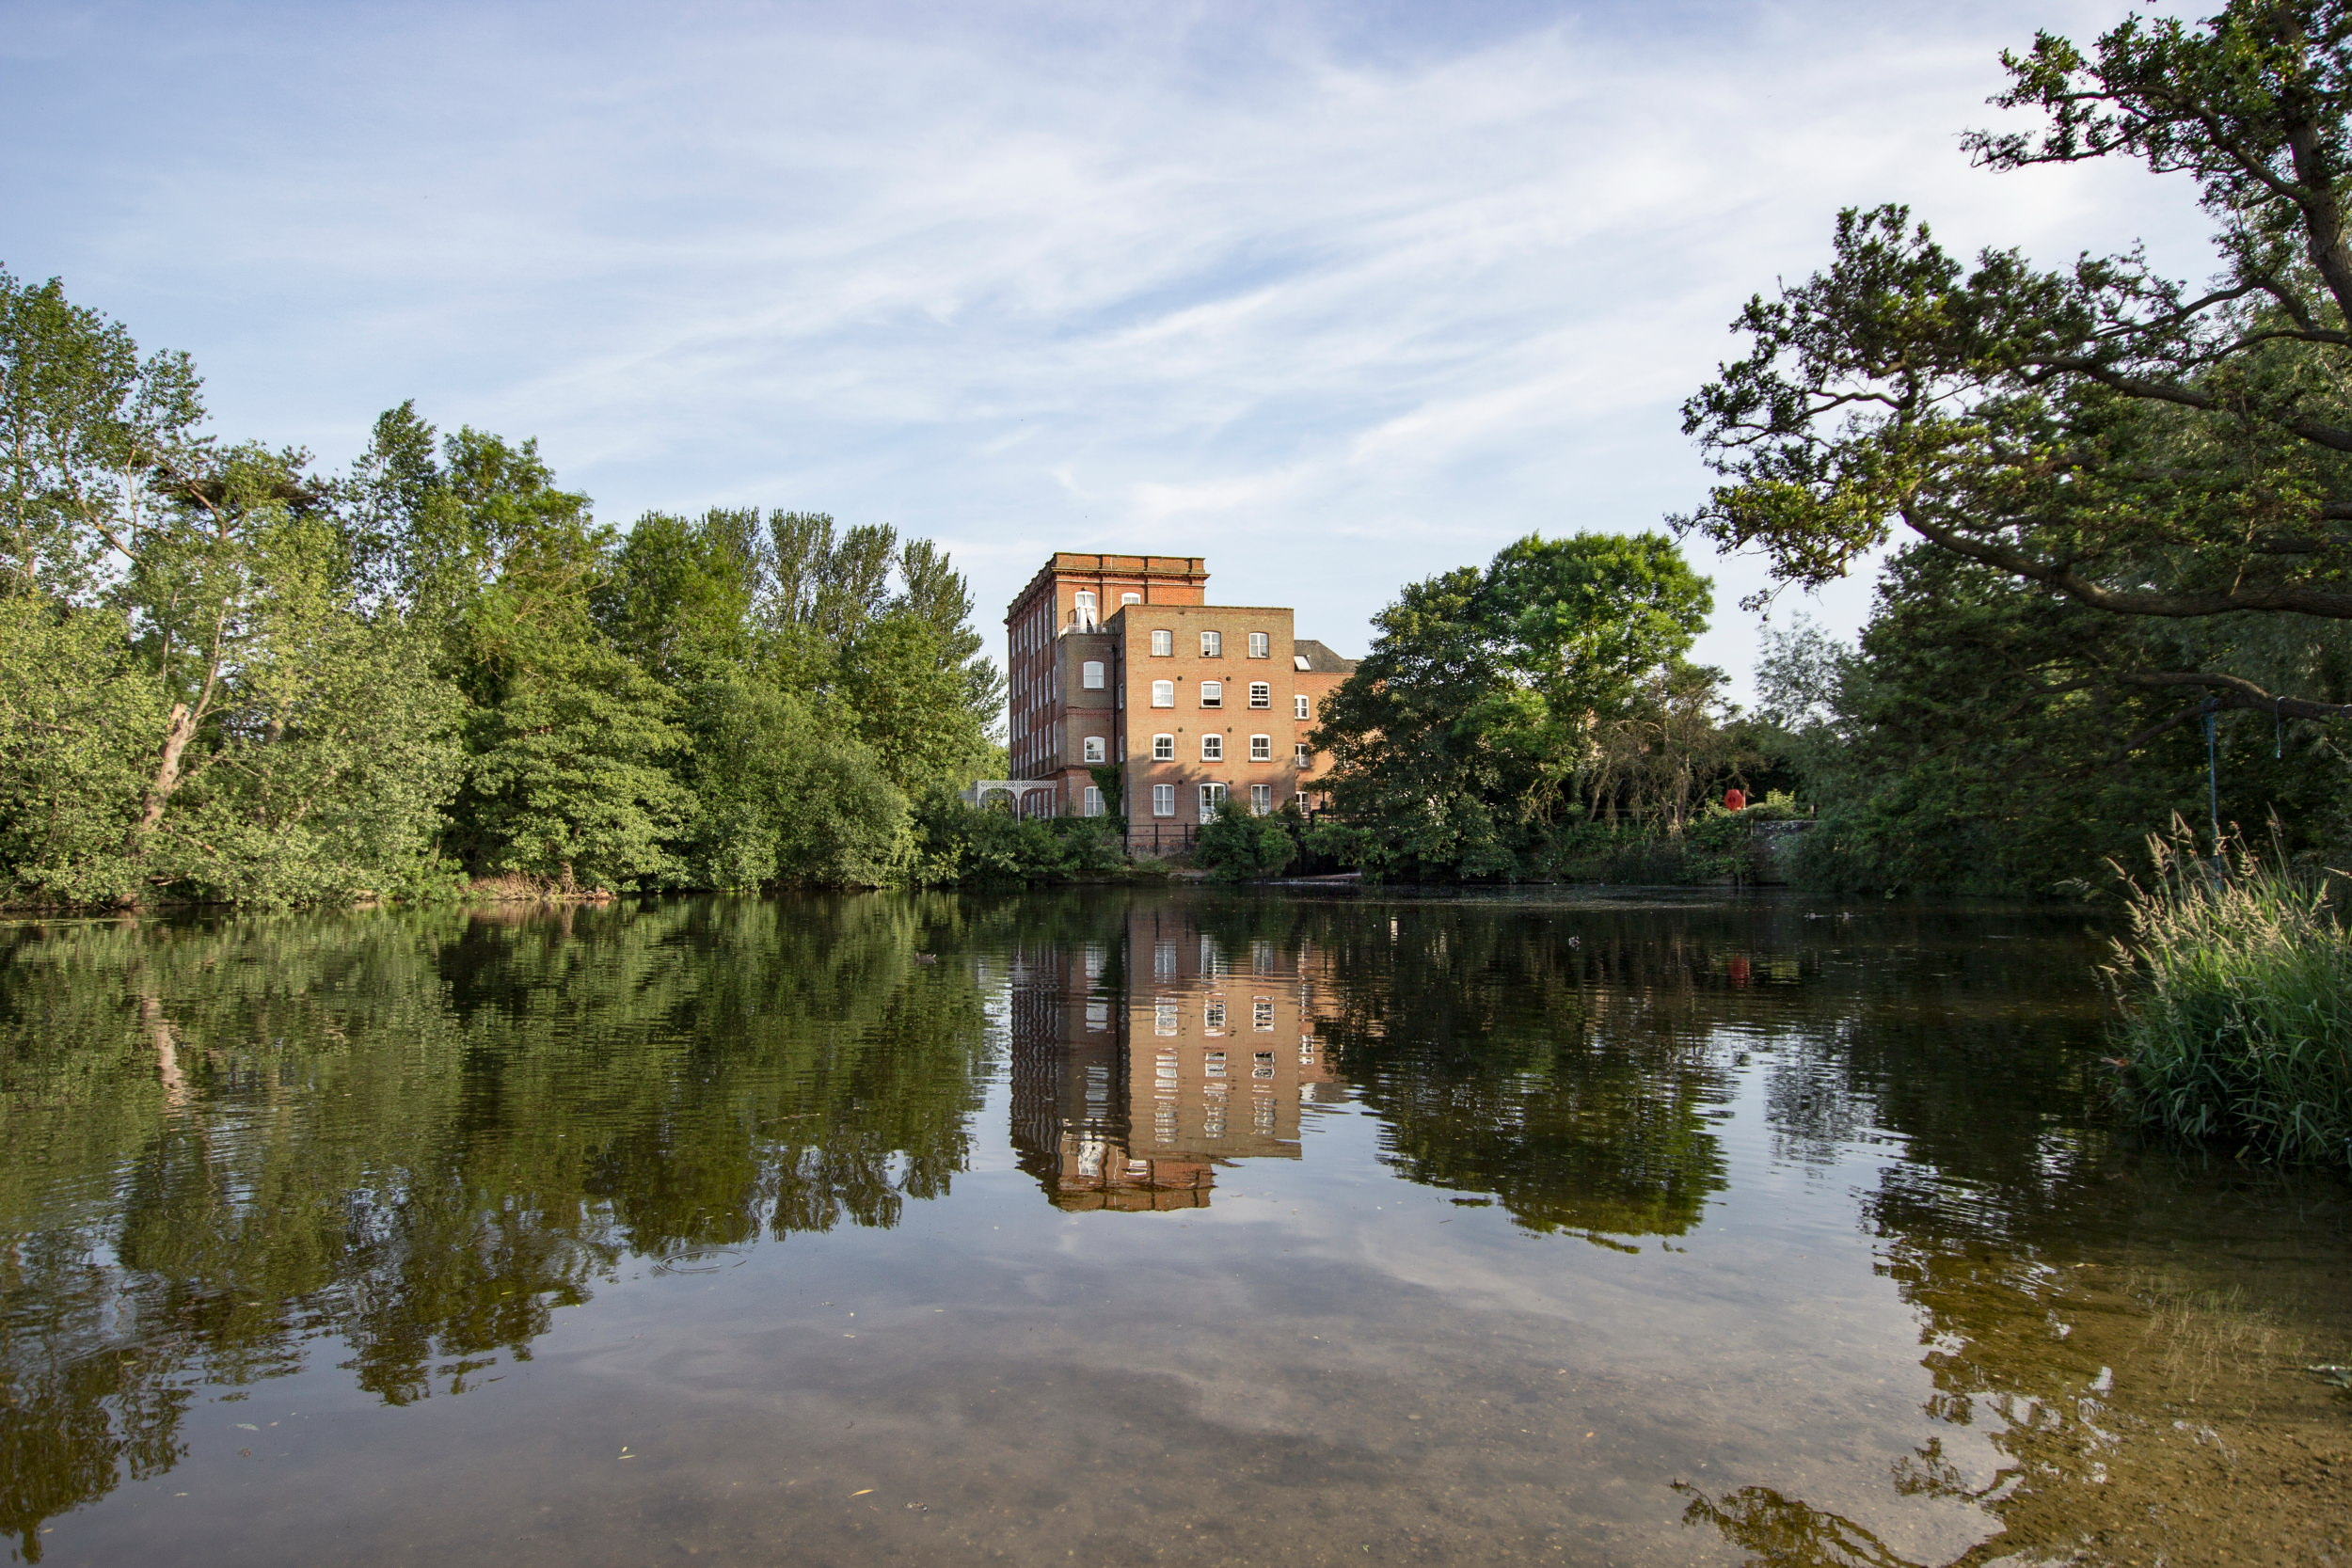 The Mill house on the Stour